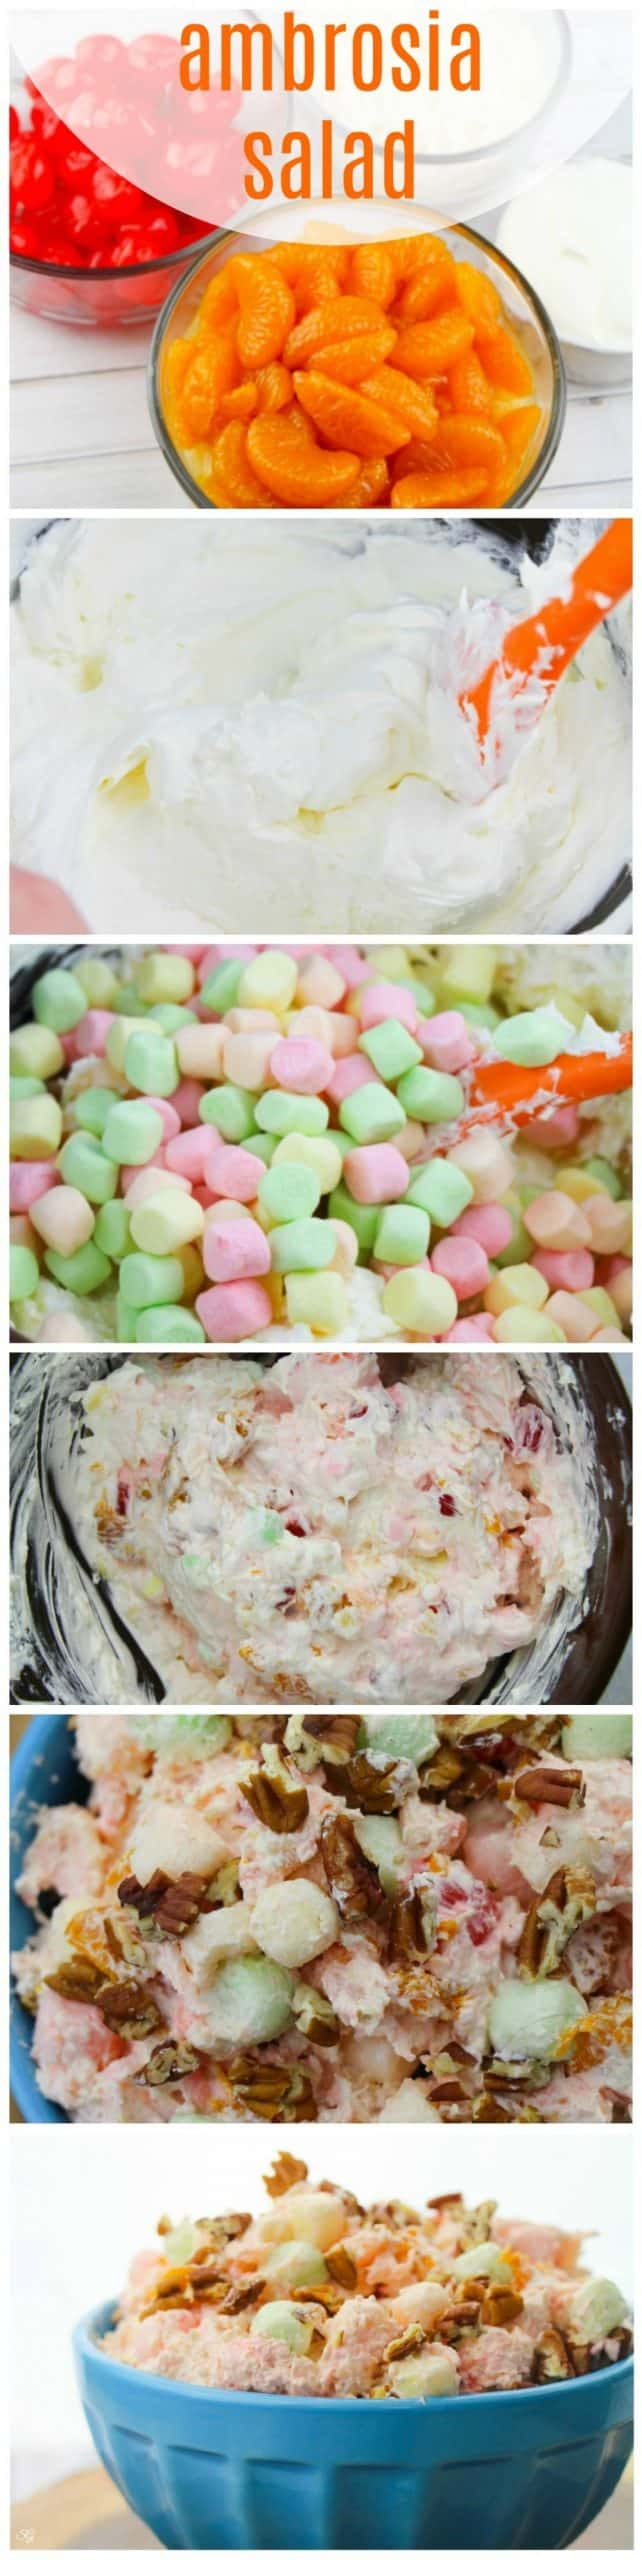 How to make ambrosia salad. A tutorial to make ambrosia salad with step by step photos and instructions